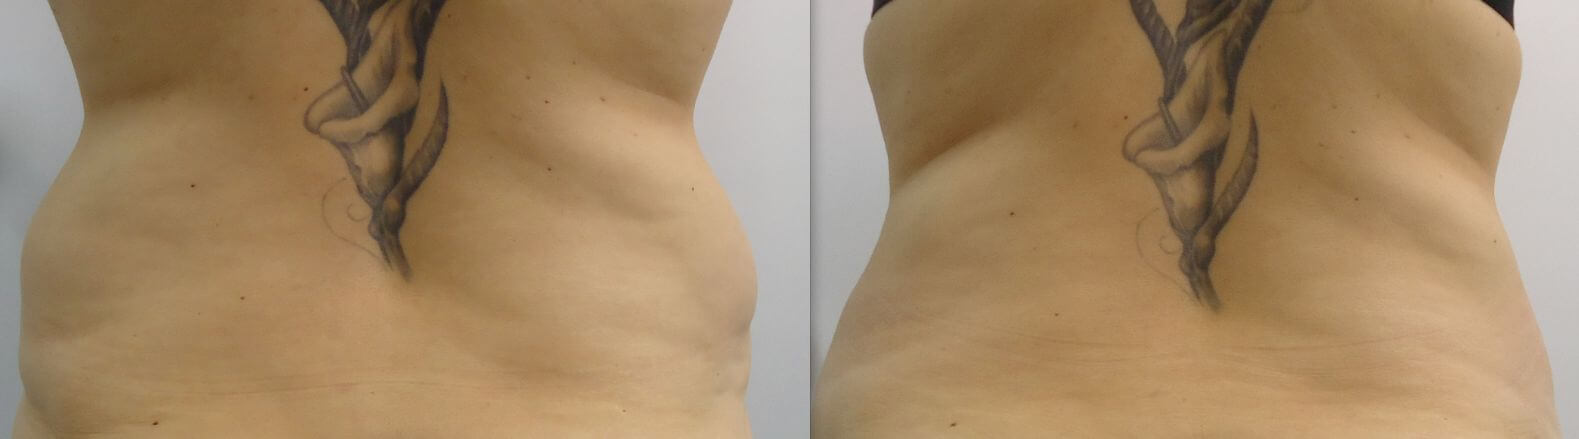 8 weeks after 1 treatment to improve irregularities from liposuction